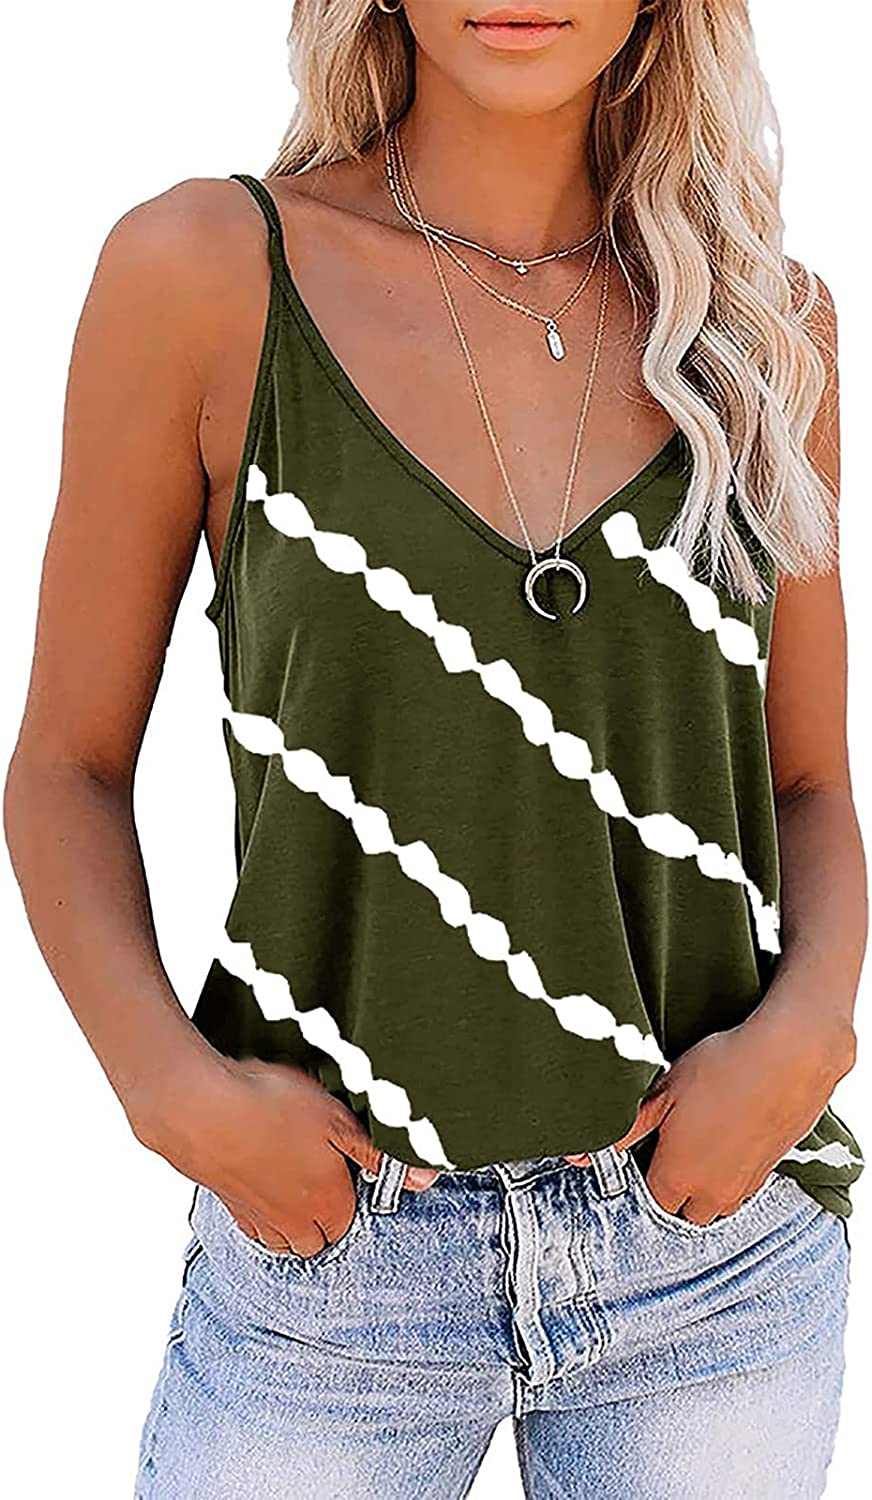 ORT Crop Tops for Women Sexy, Women's Print Hollow Out T-Shirt Crew Neck Plus Size Tank Top Spaghetti Striped Oversized Tops